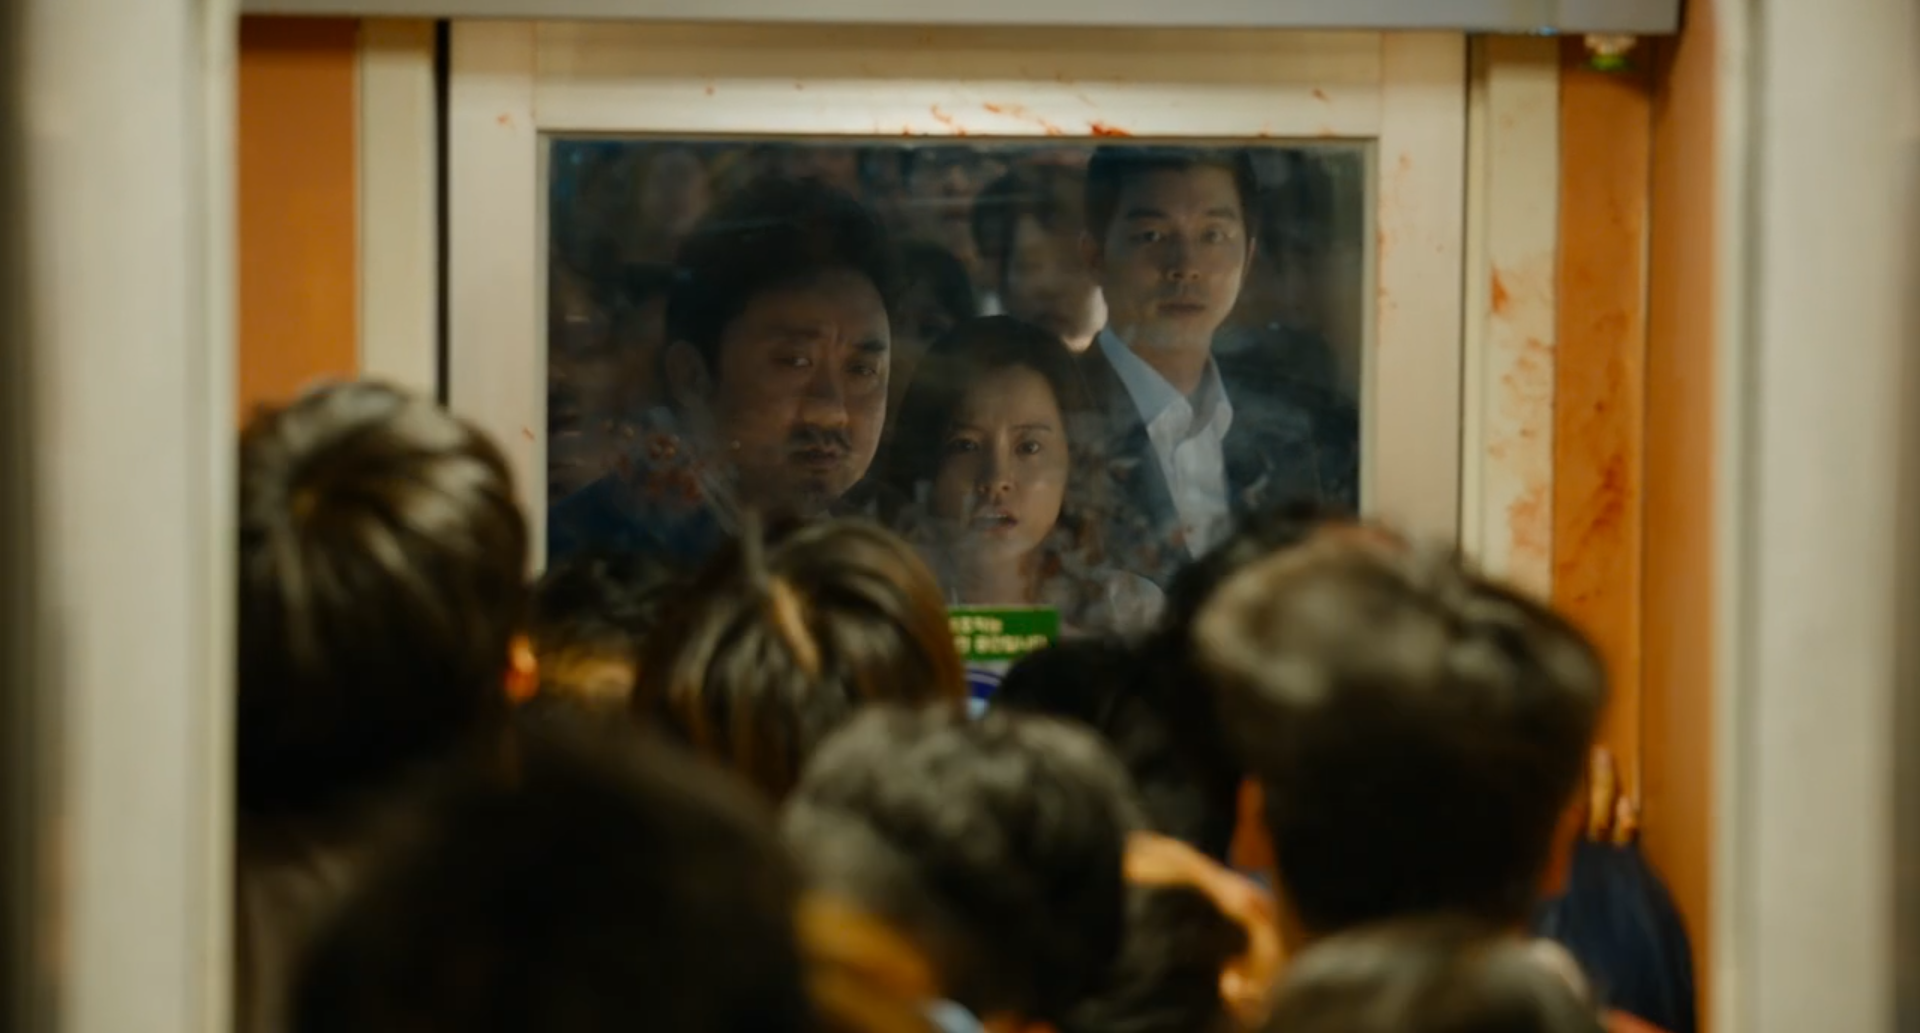 Zombie Movie Train to Busan Ma Dong-seok reviewed on Christian Podcast Cinematic Doctrine The Reformed Gamers